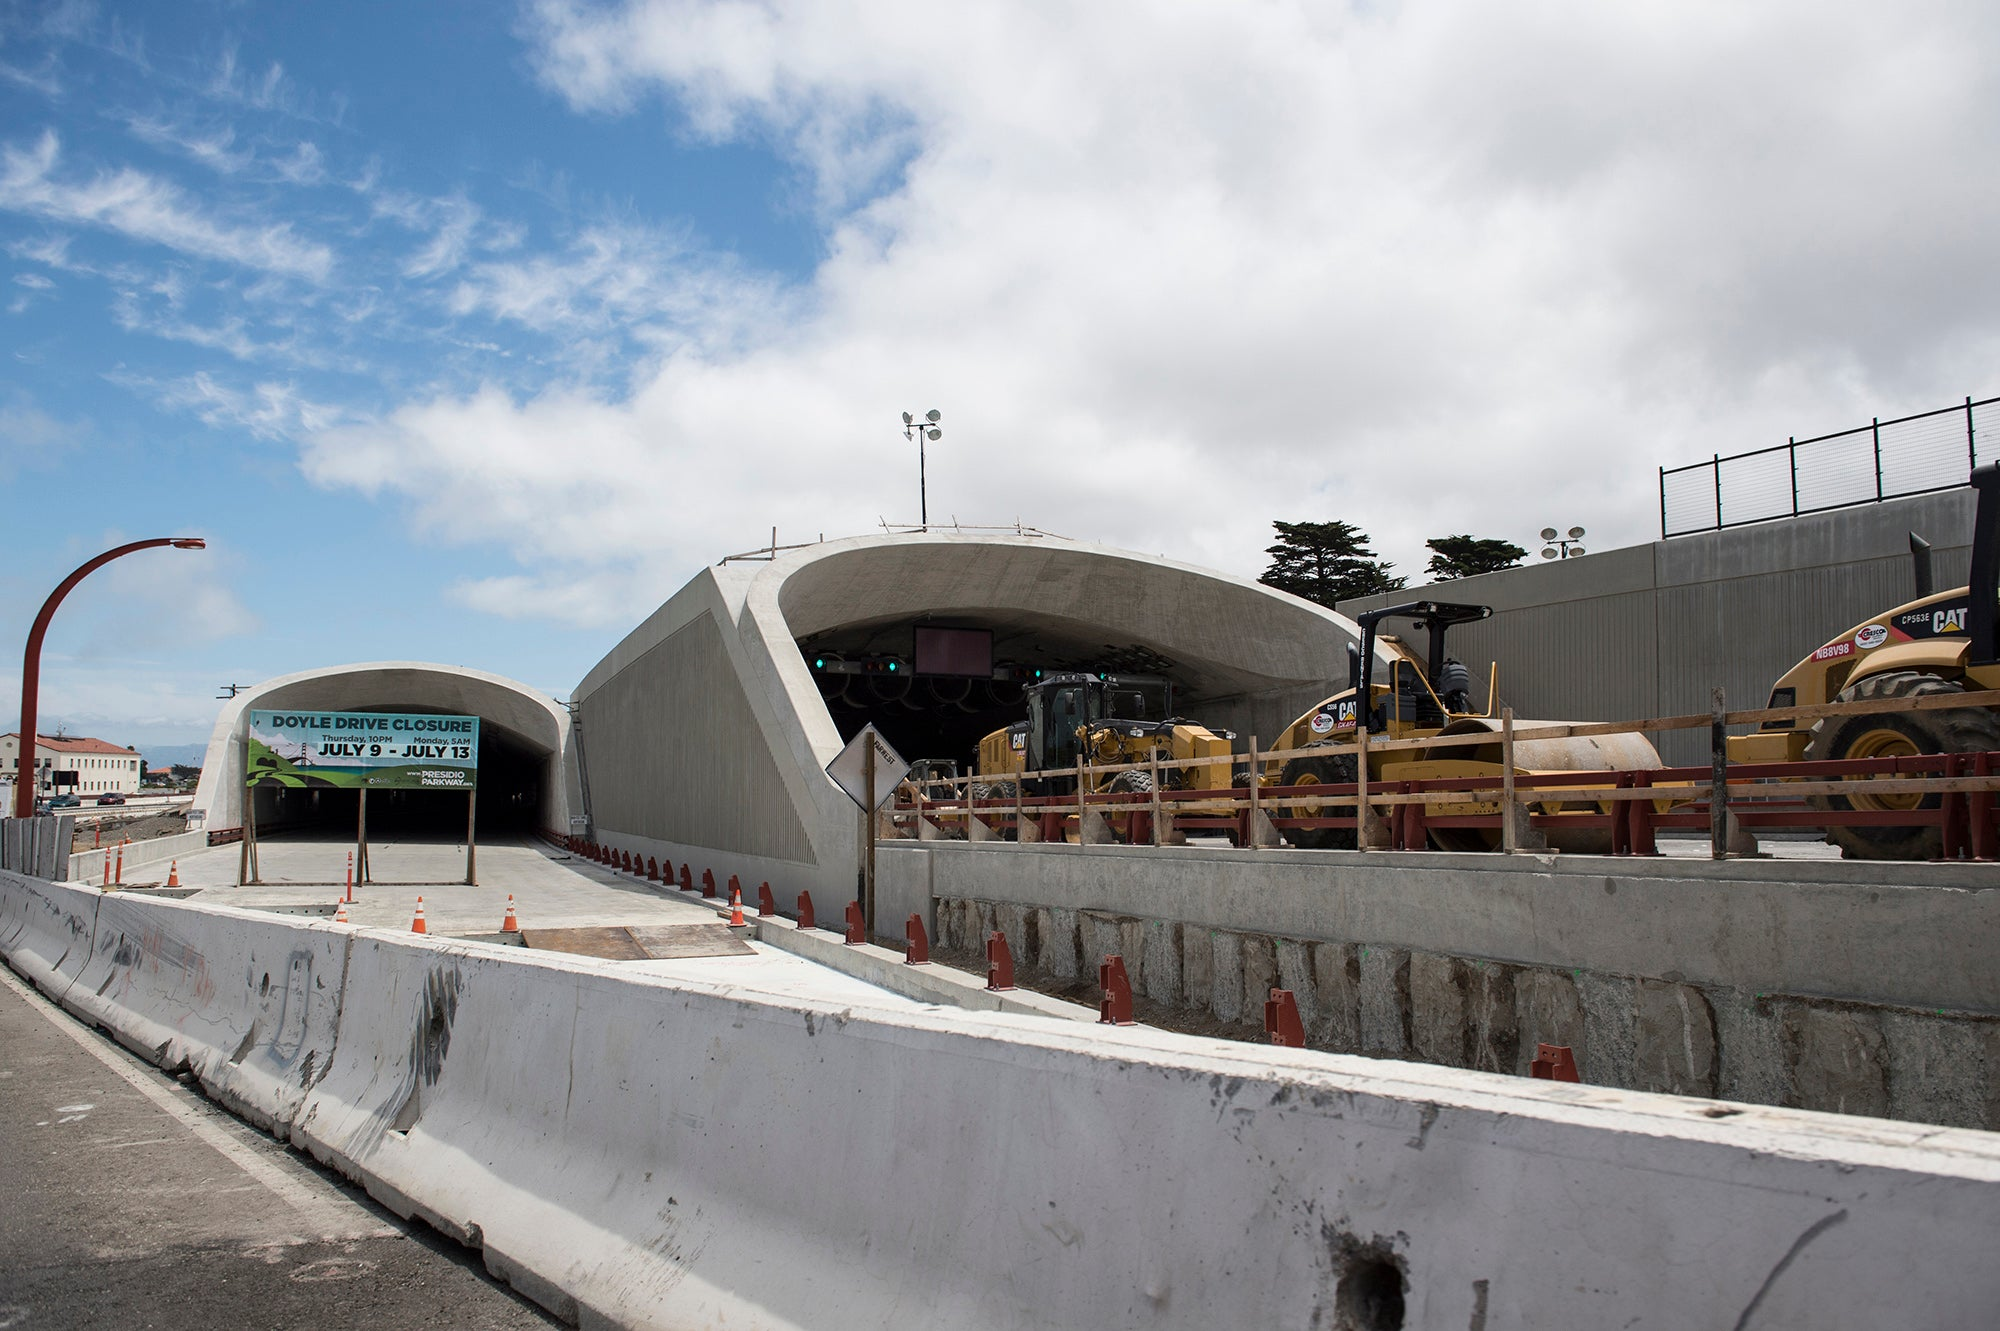 During the closure, crews will need to bust through barriers to connect the tunnels with active traffic lanes.